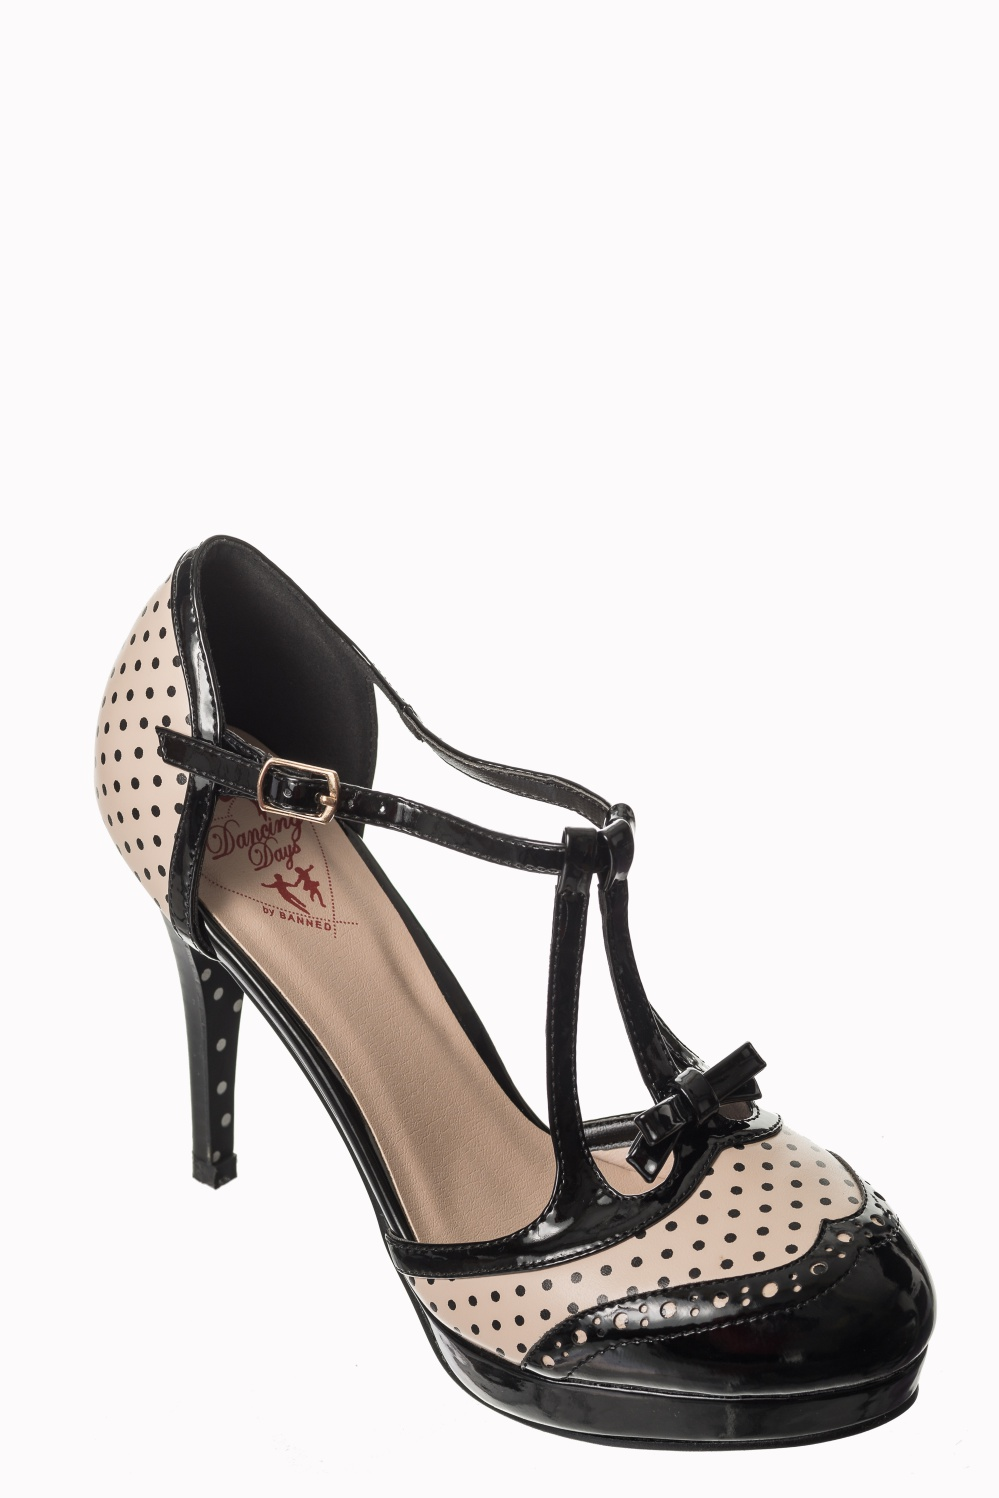 Dancing Days Nude One Note Samba 50s Shoes